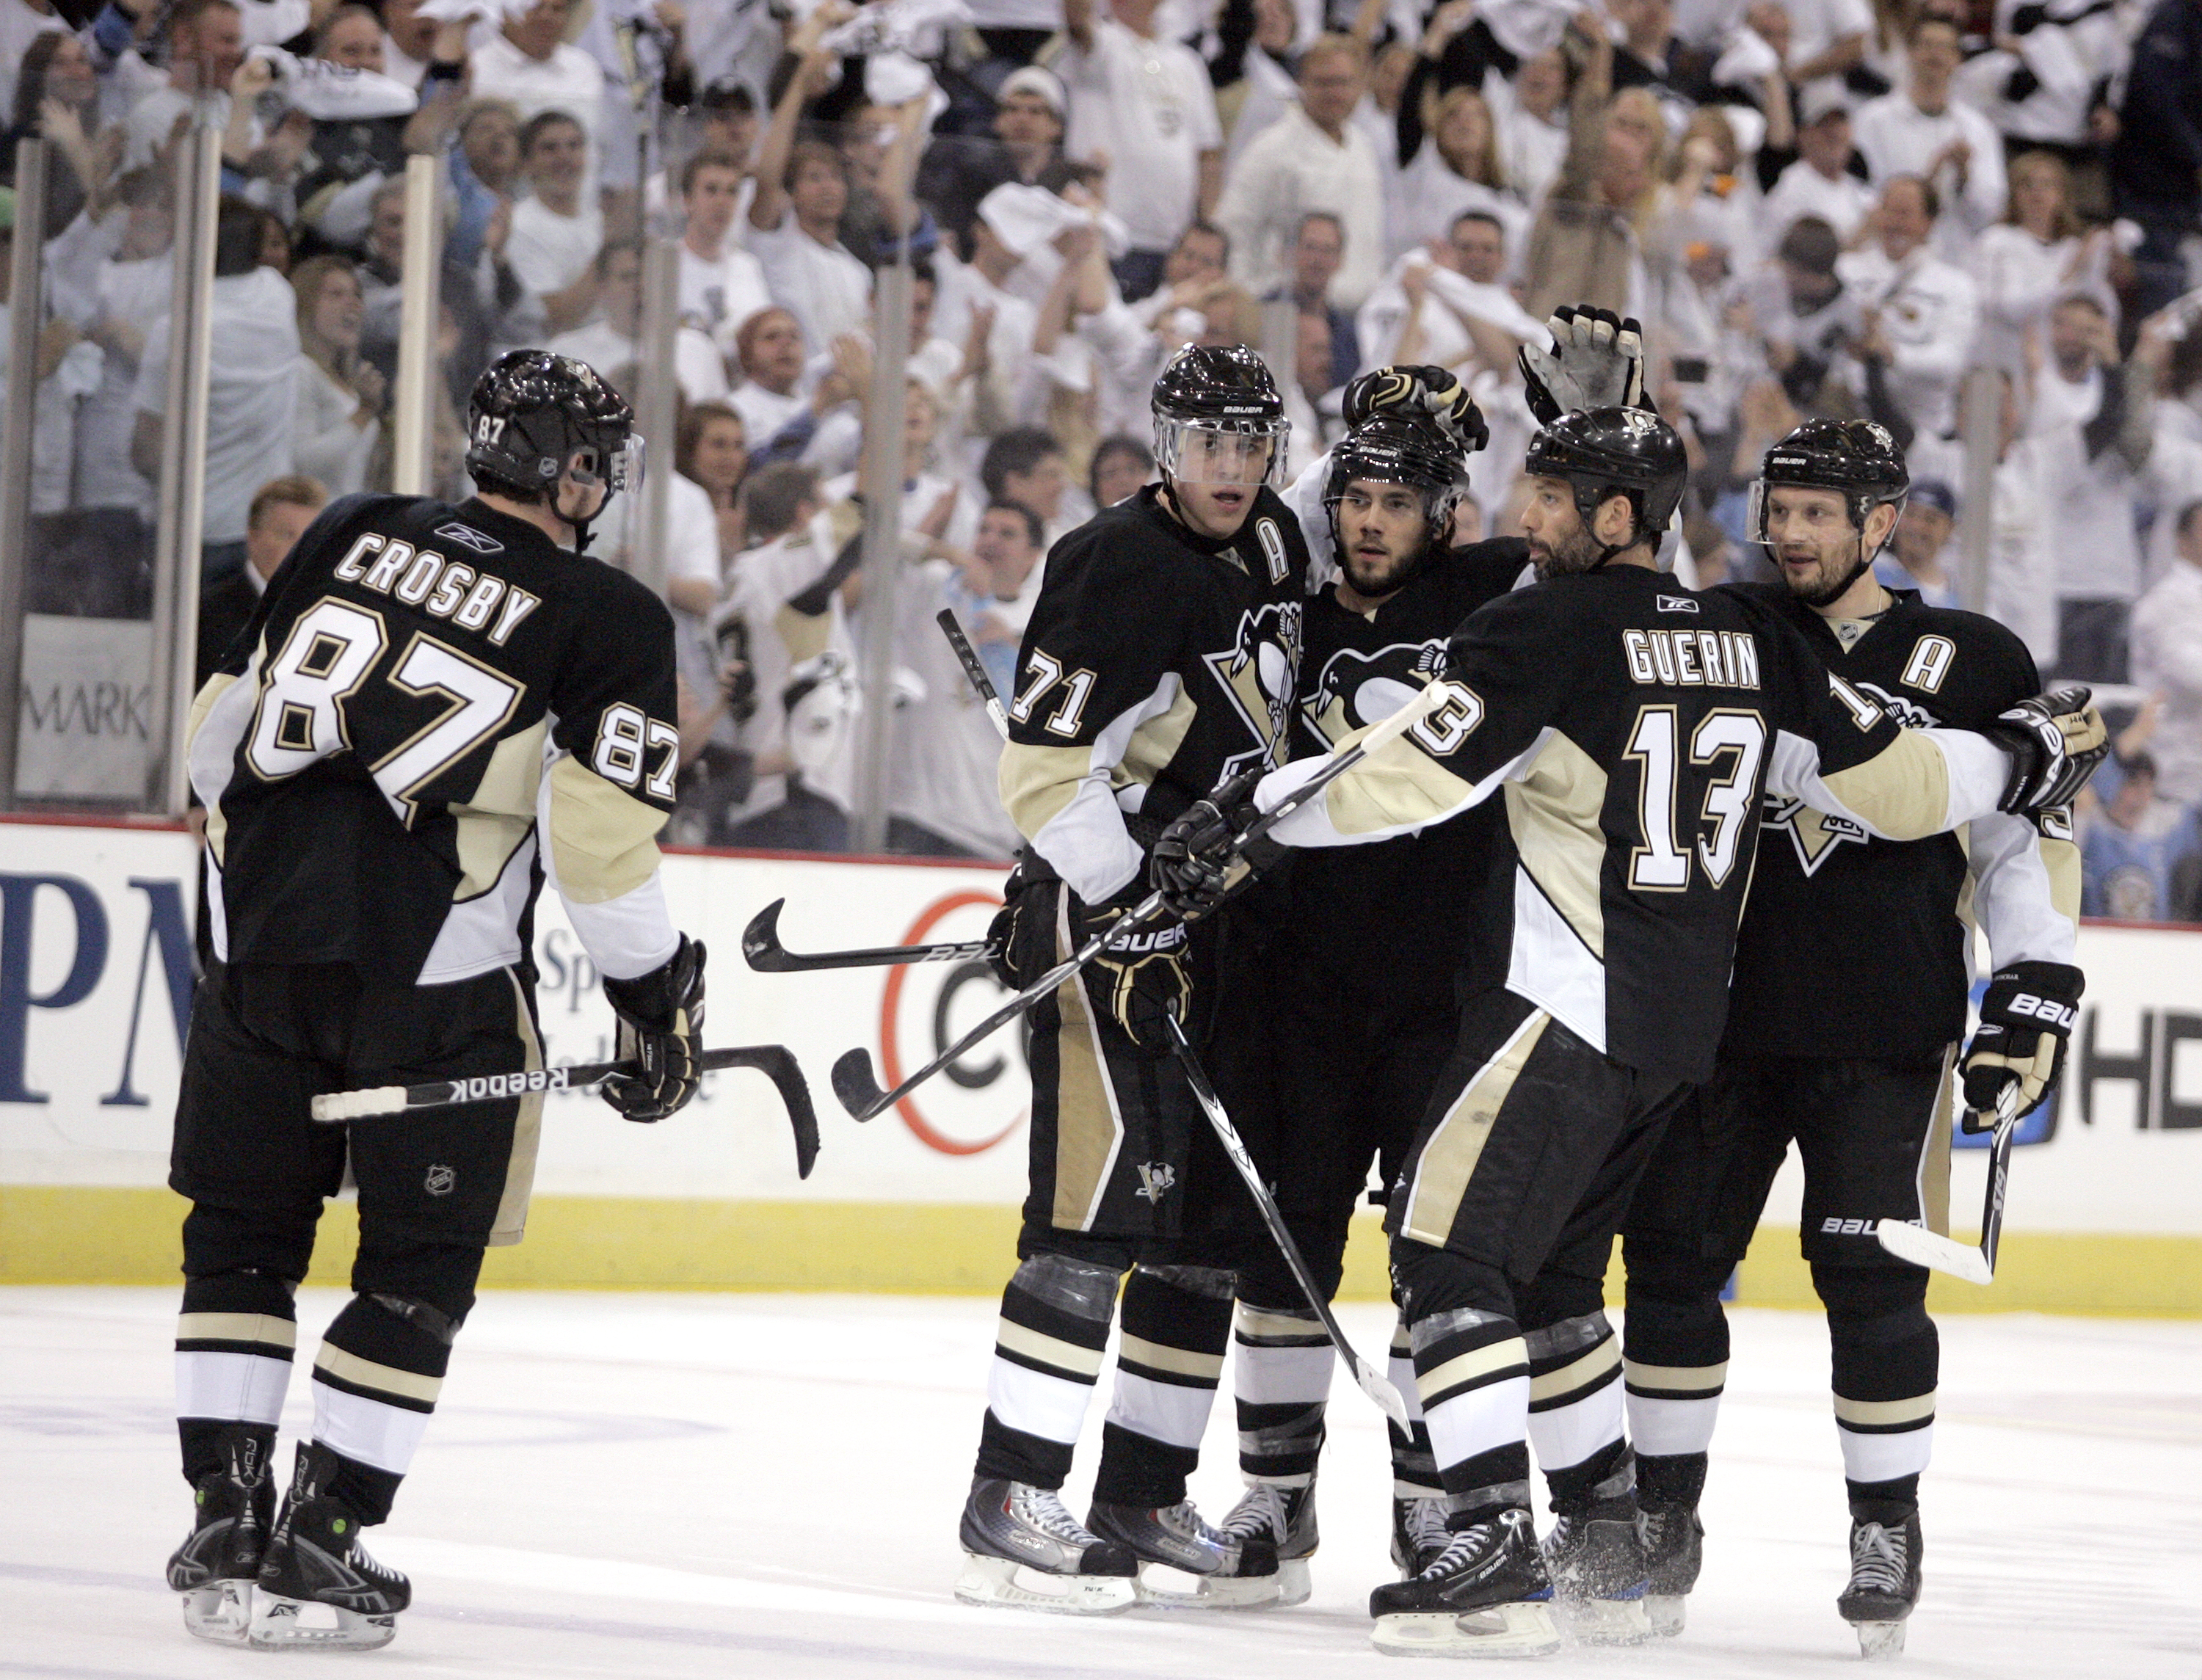 PITTSBURGH - MAY 8:  Kris Letang #58 of the Pittsburgh Penguins celebrates his power play goal with teammates agains the Montreal Canadiens in Game Five of the Eastern Conference Semifinals during the 2010 NHL Stanley Cup Playoffs at Mellon Arena on May 8